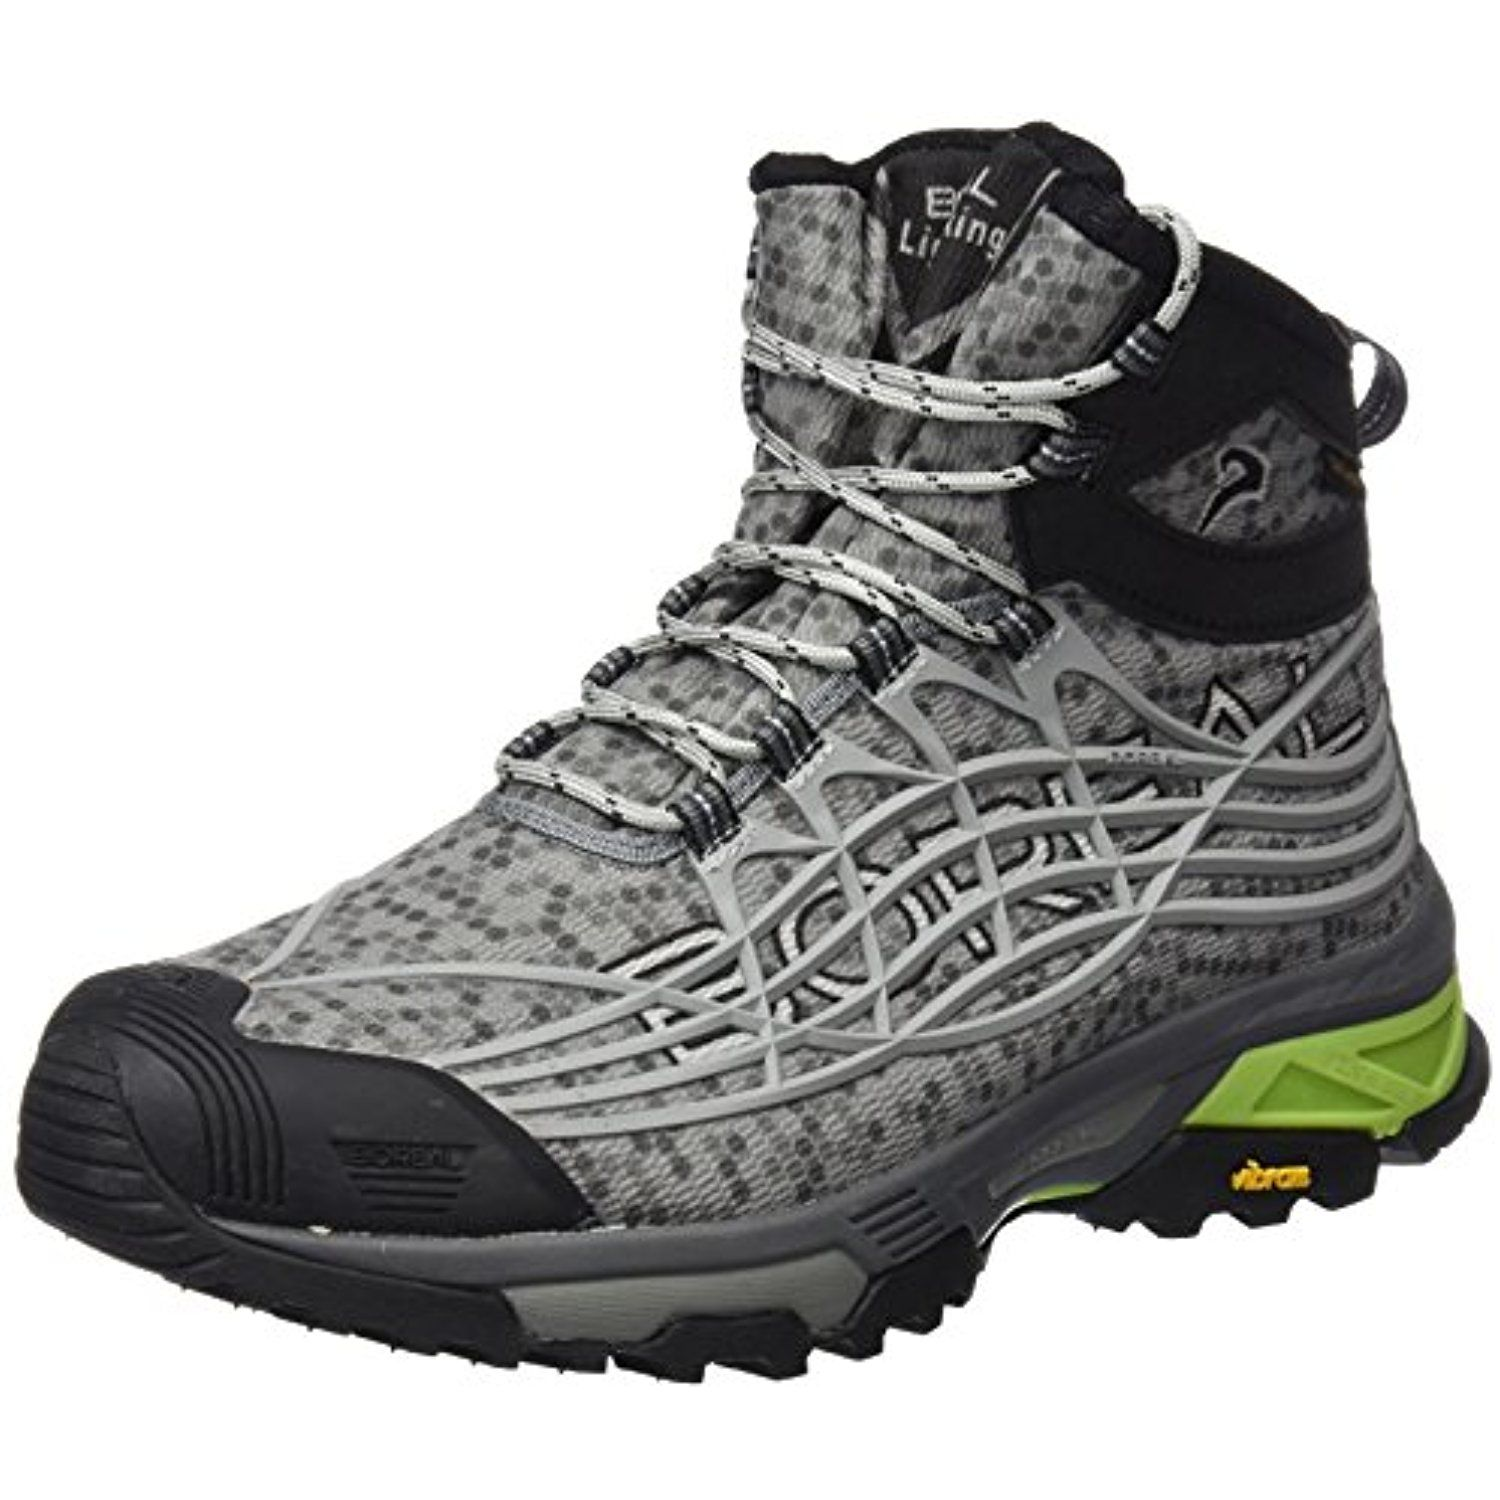 a6a3066dff3 Climbing Boots Womens Lightweight Hurricane Gris Grey 45013 -- Read more at  the image link